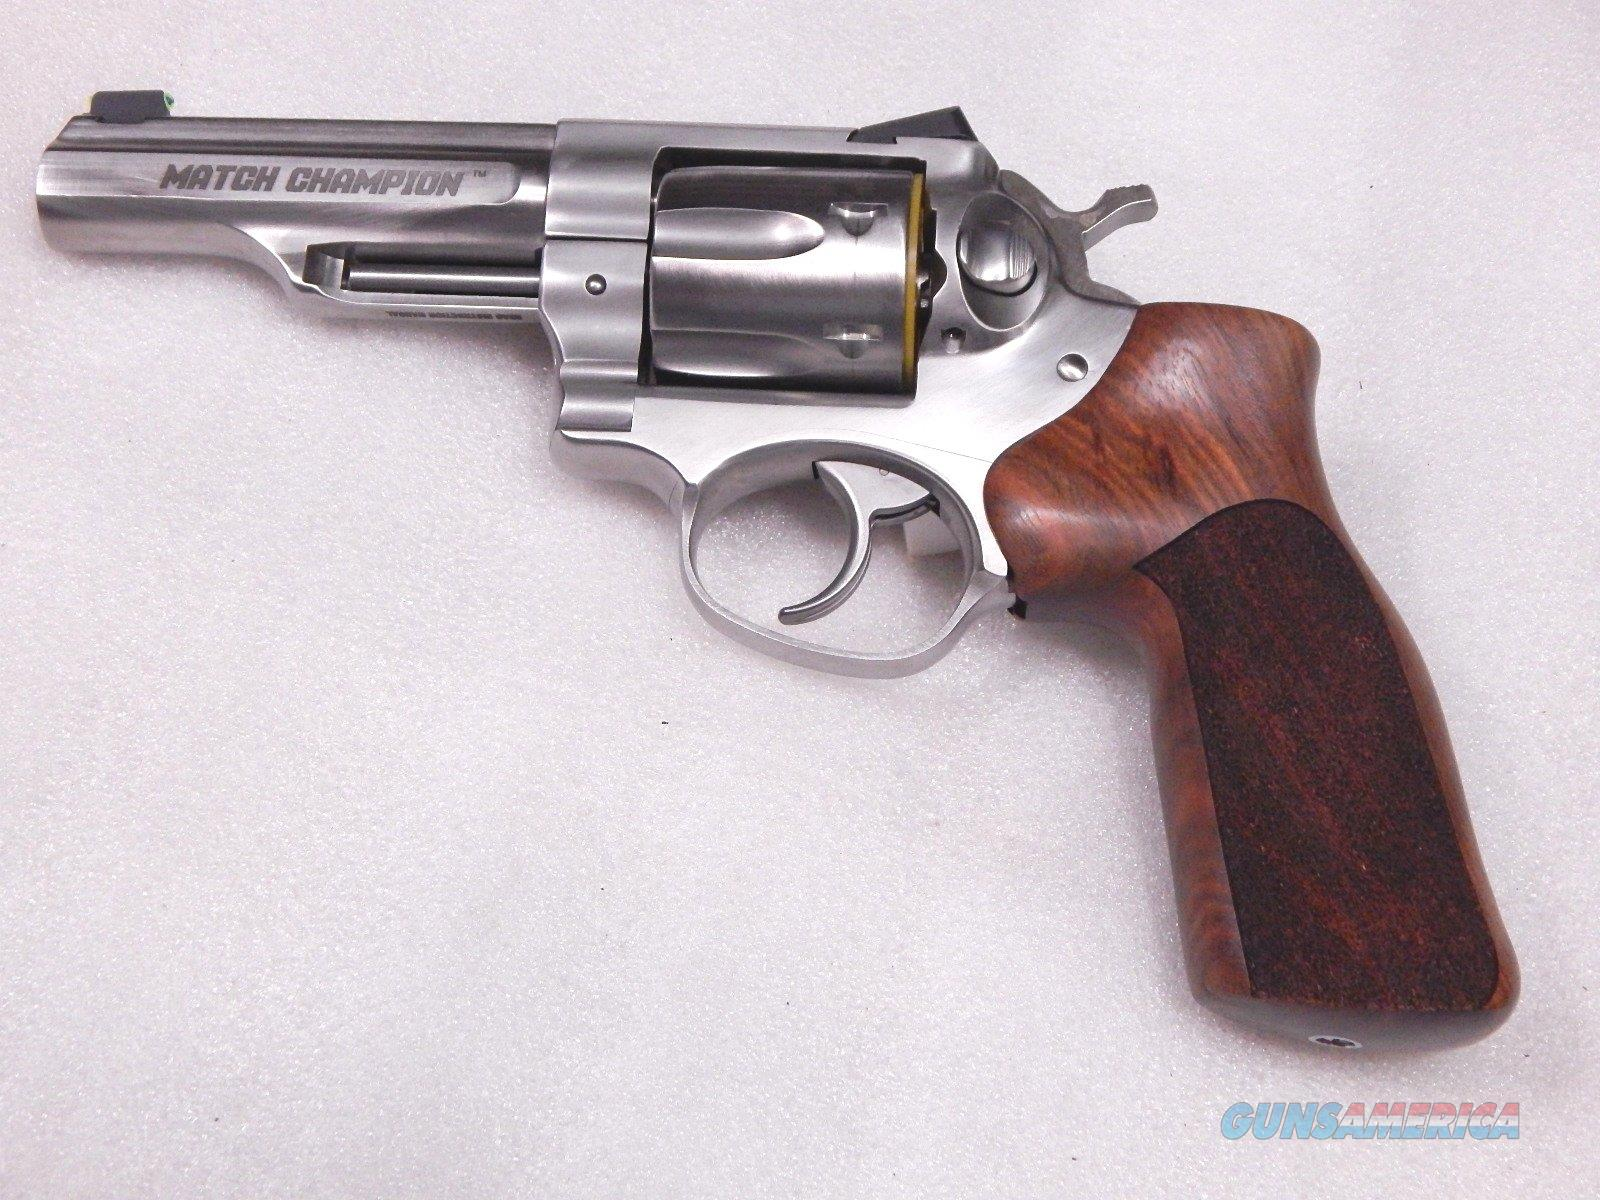 Ruger GP100 Match Champion NIB  Guns > Pistols > Ruger Double Action Revolver > GP100